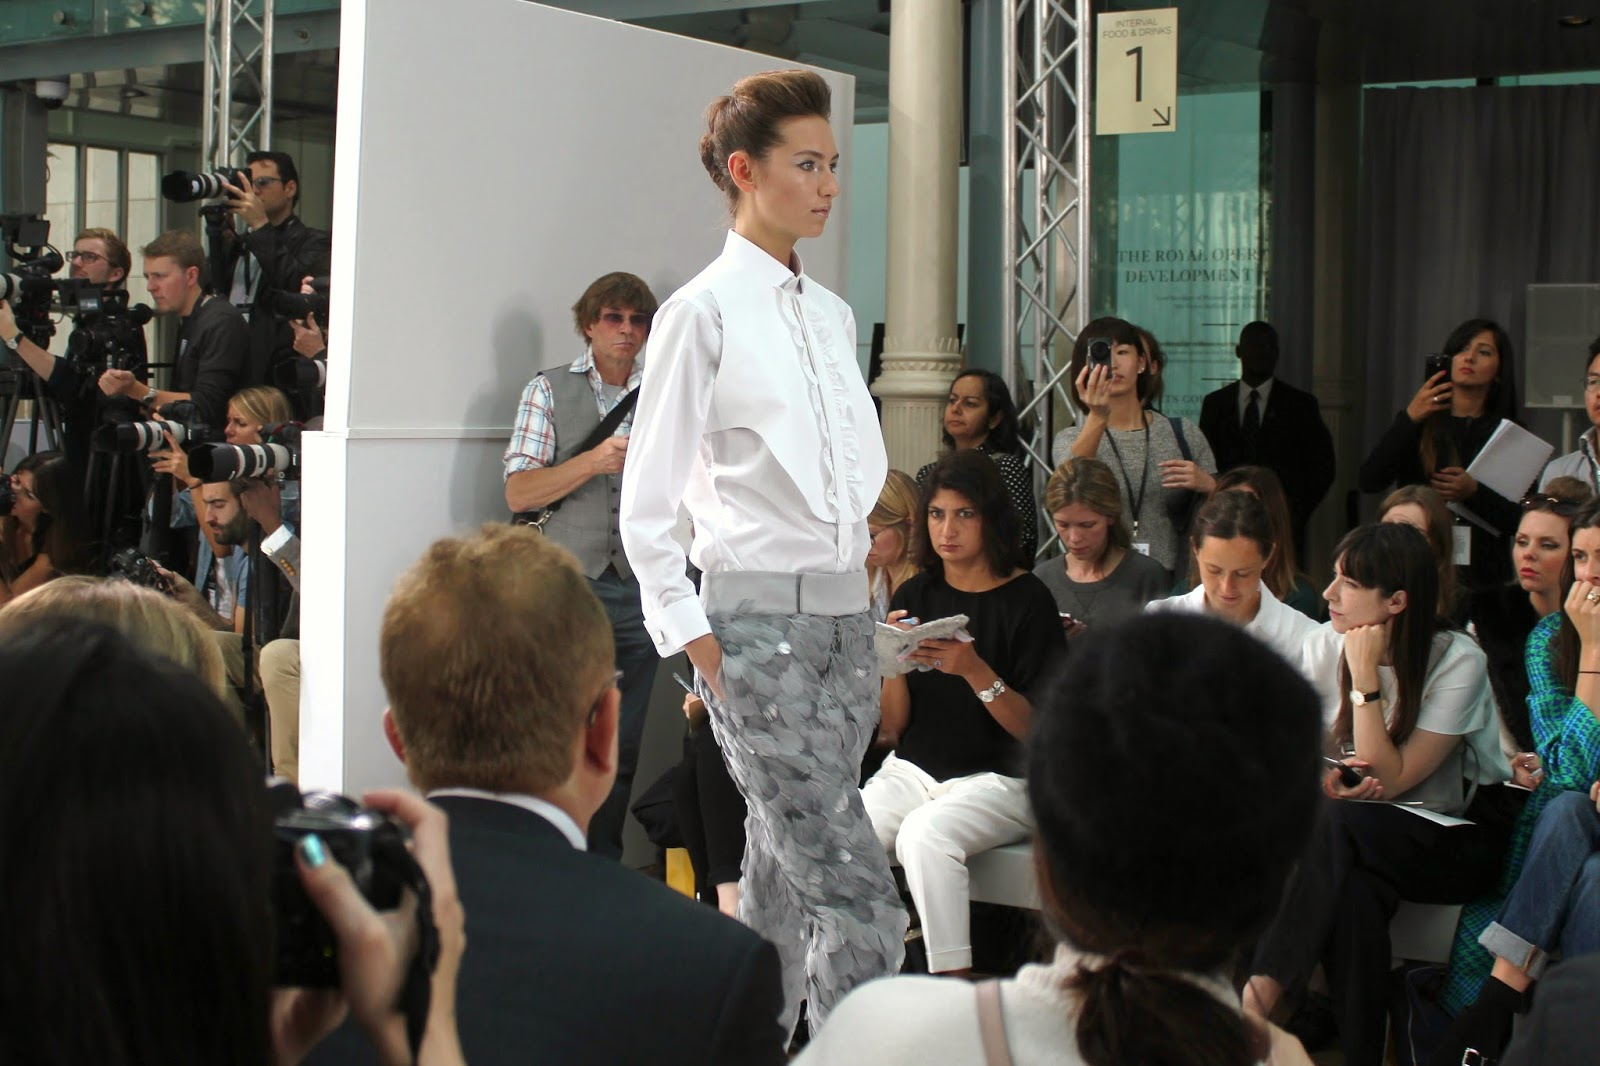 london-fashion-week-2014-lfw-DAKS-show-catwalk-spring-summer-2015-models-clothes-fashion-frow-royal-opera-house-shirt-trousers-feathers